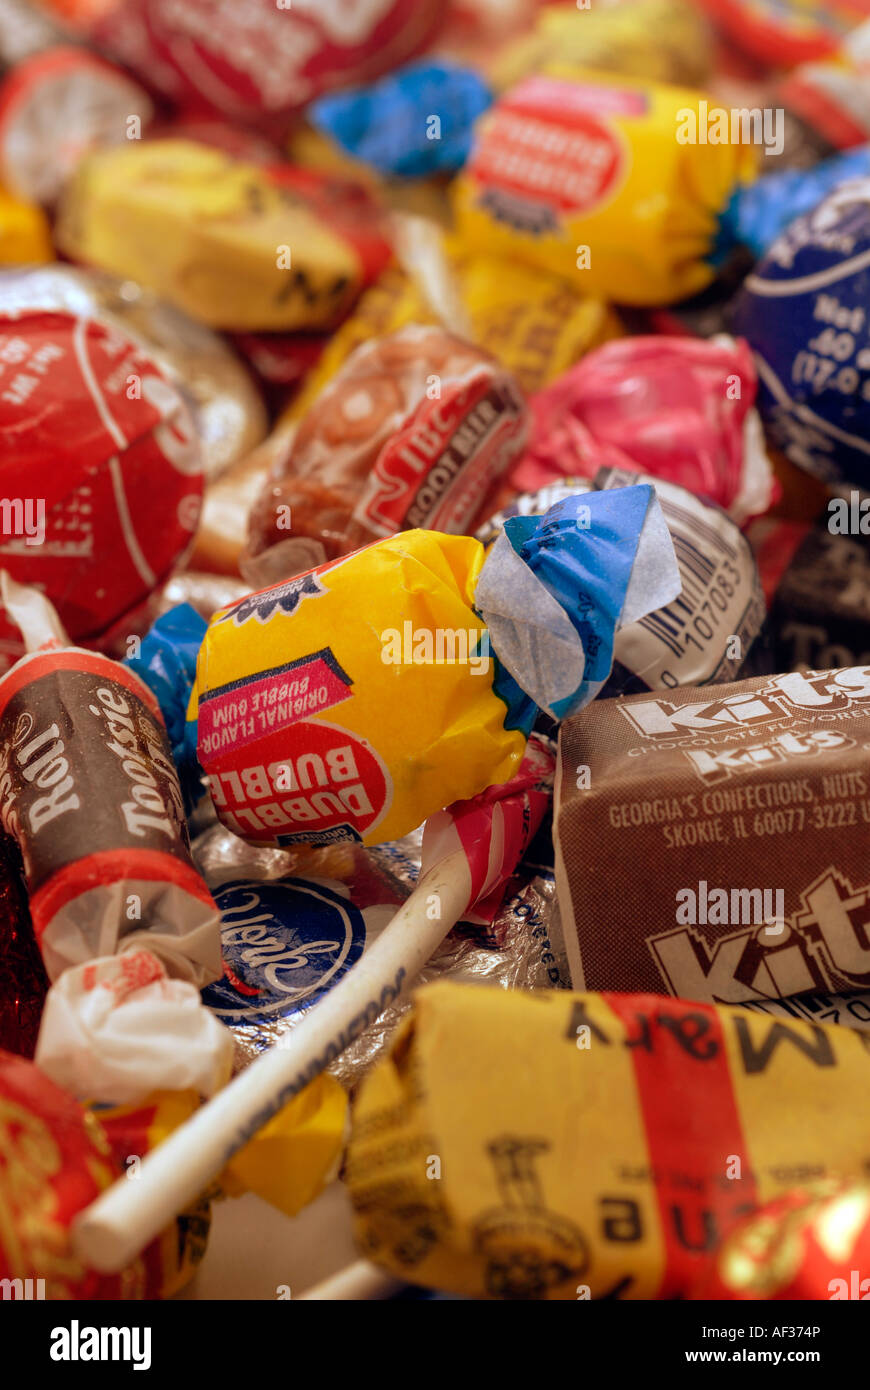 An assortment of individually wrapped single serving candy - Stock Image